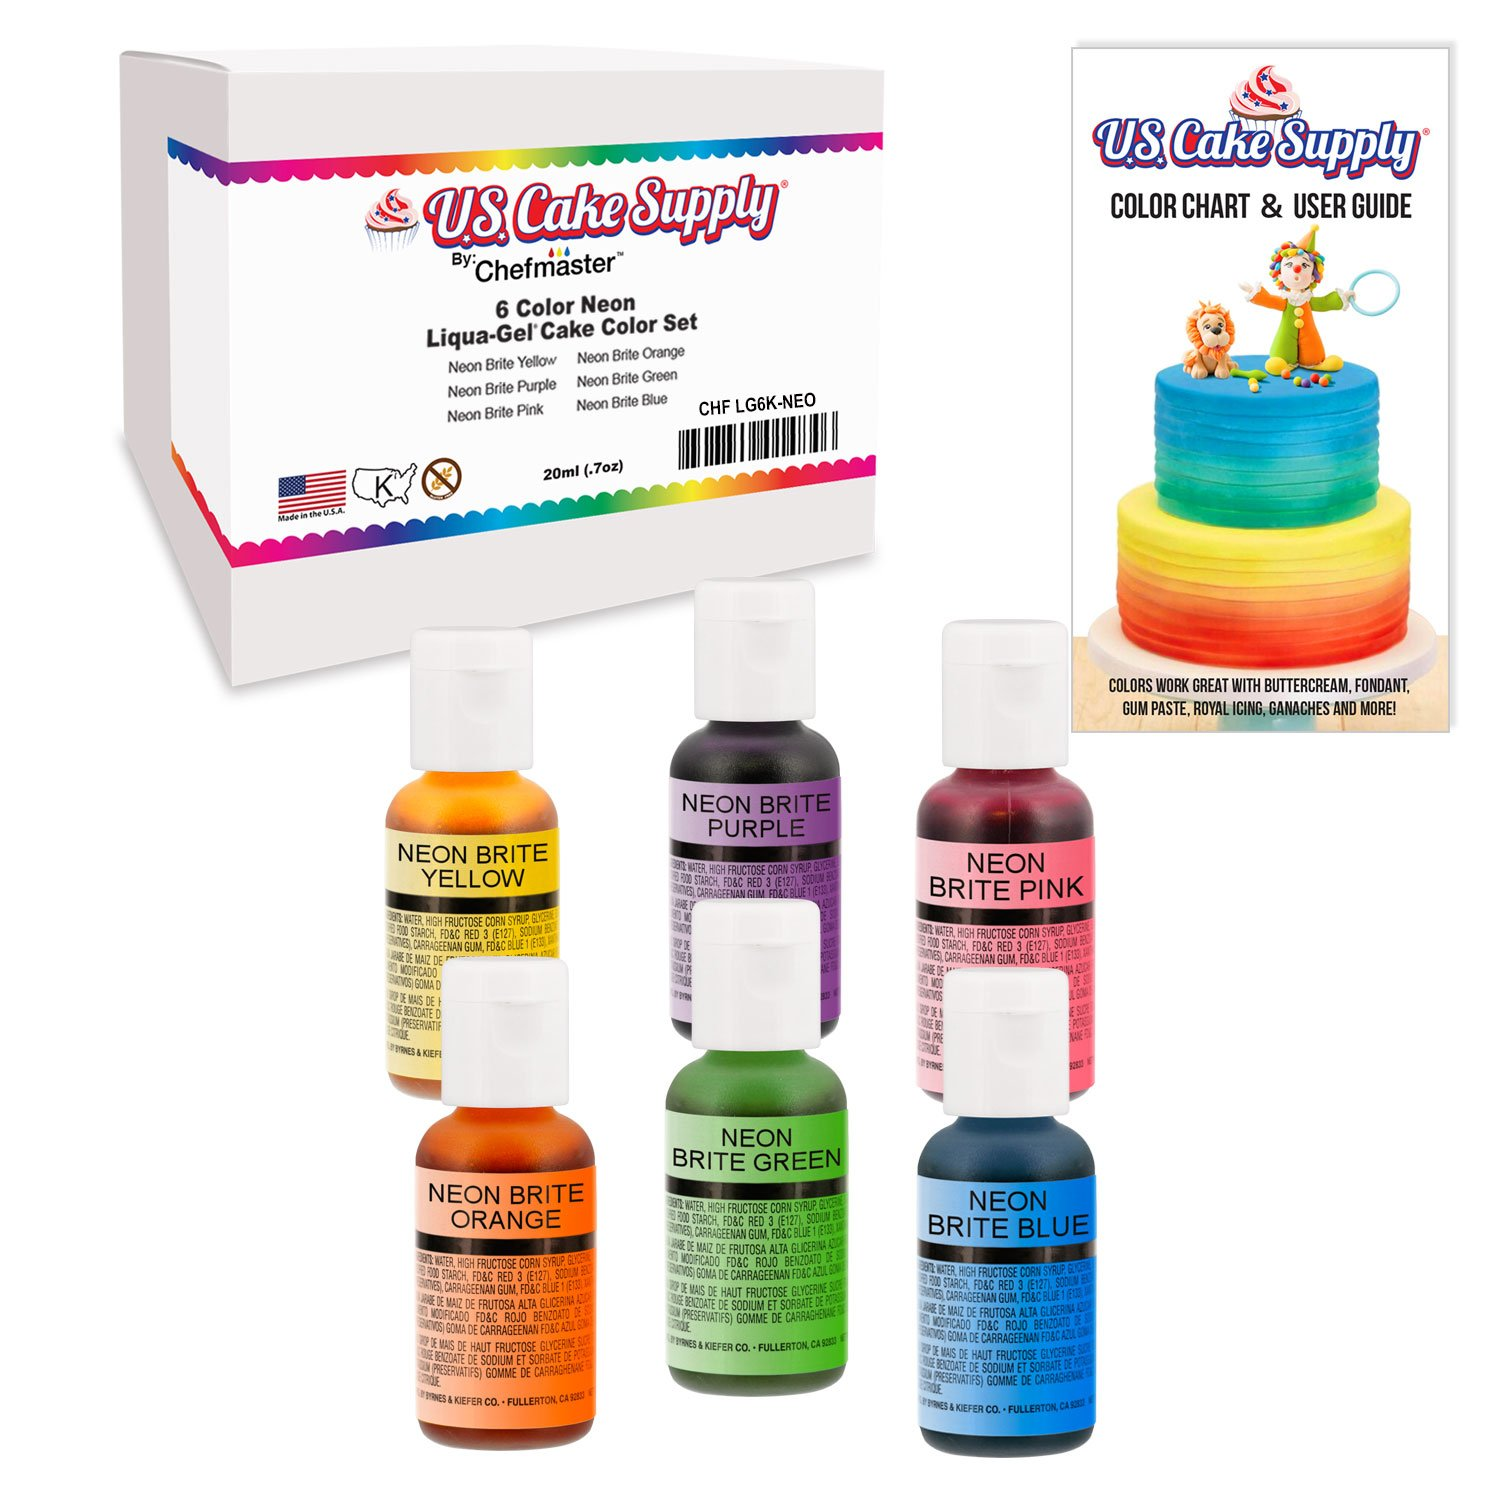 6 Food Color Neon US Cake Supply by Chefmaster Liqua-Gel Paste Cake Food Coloring Set - 0.75 fl. oz. (20ml) Bottles